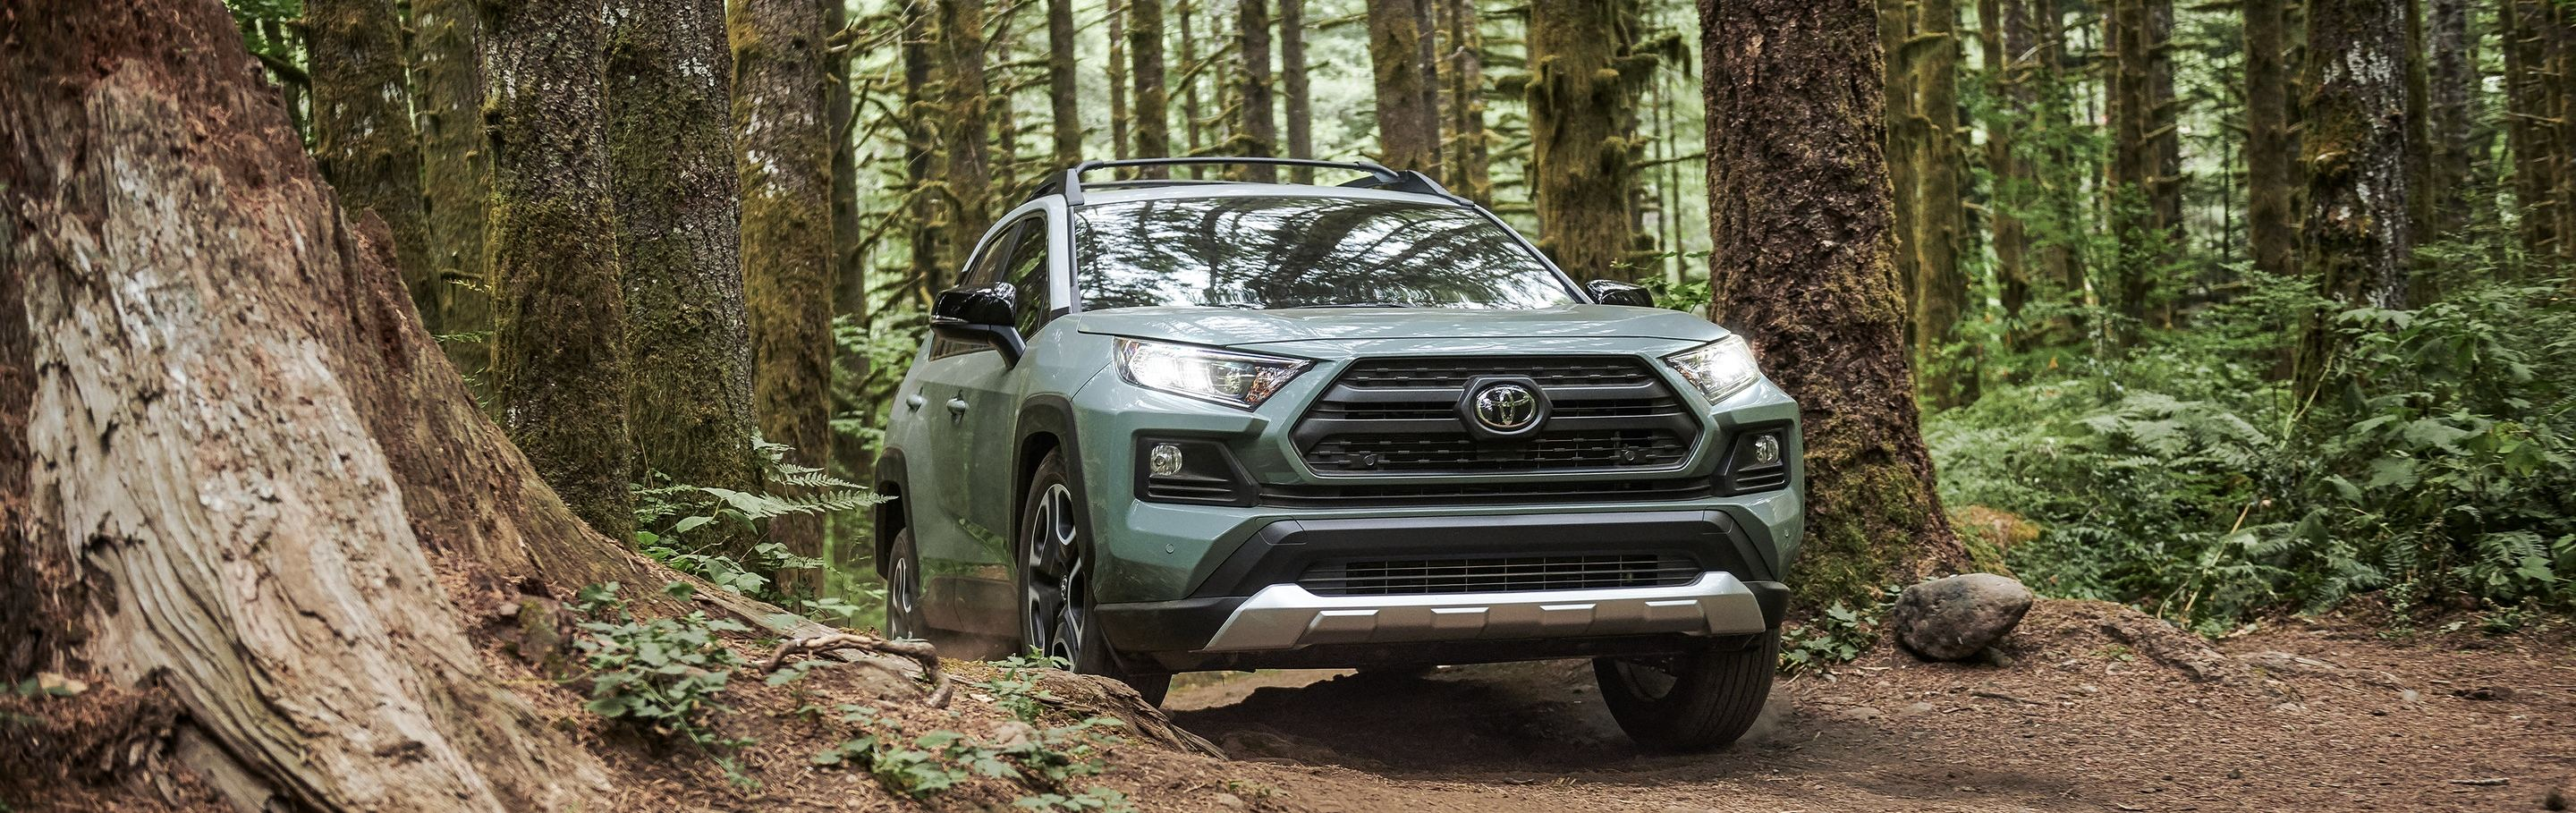 2020 Toyota RAV4 for Sale near Hayward, CA